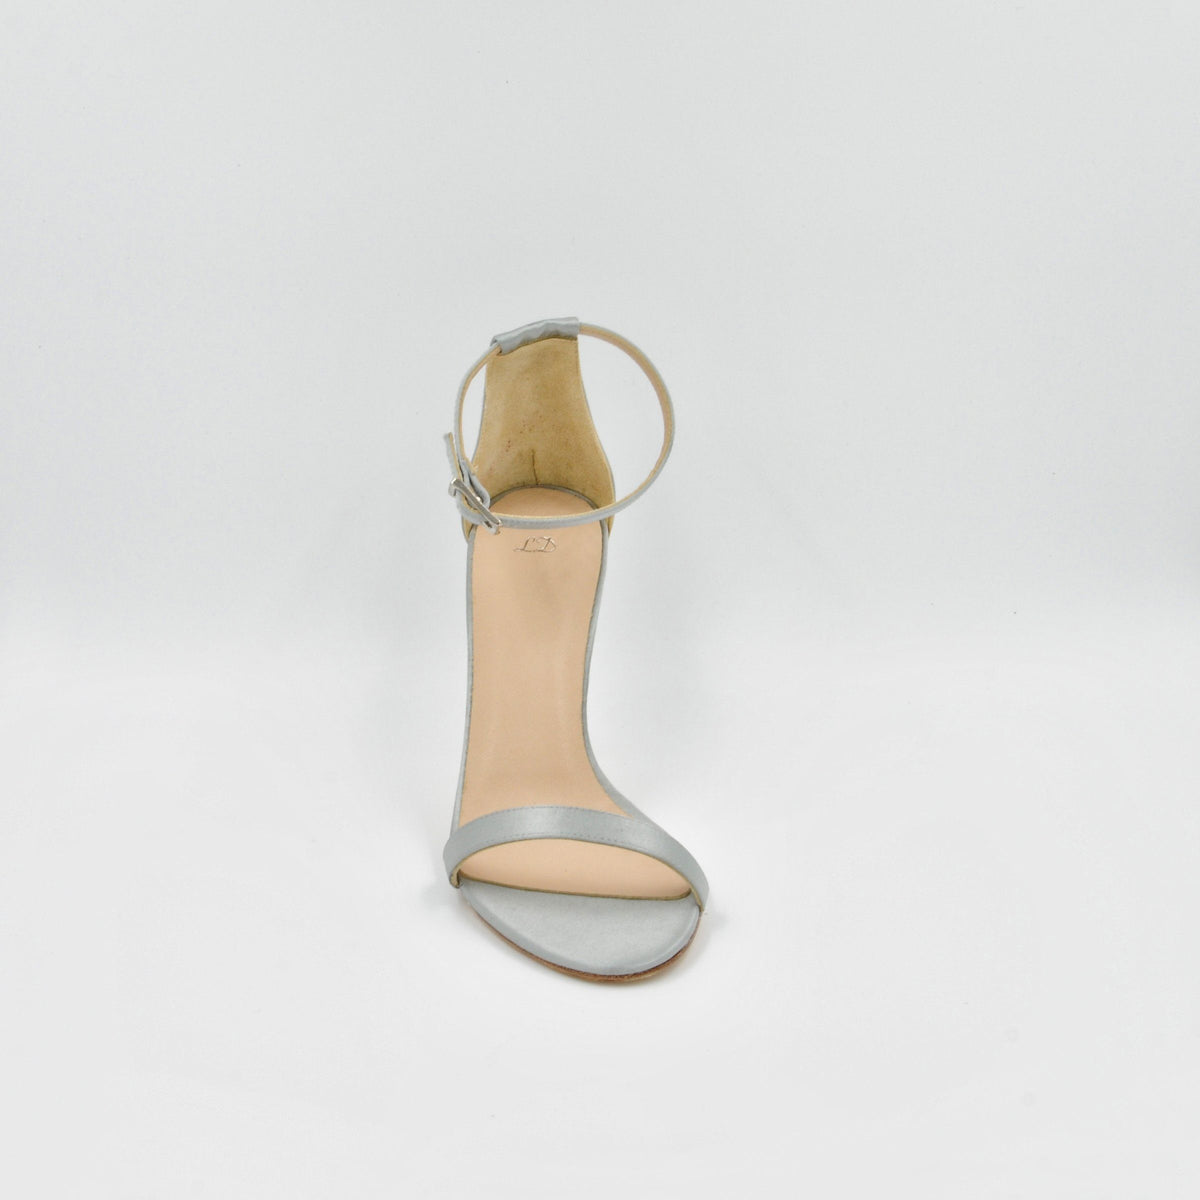 Lola Domecq Alejandra In Silver Handmade satin sandal for wedding